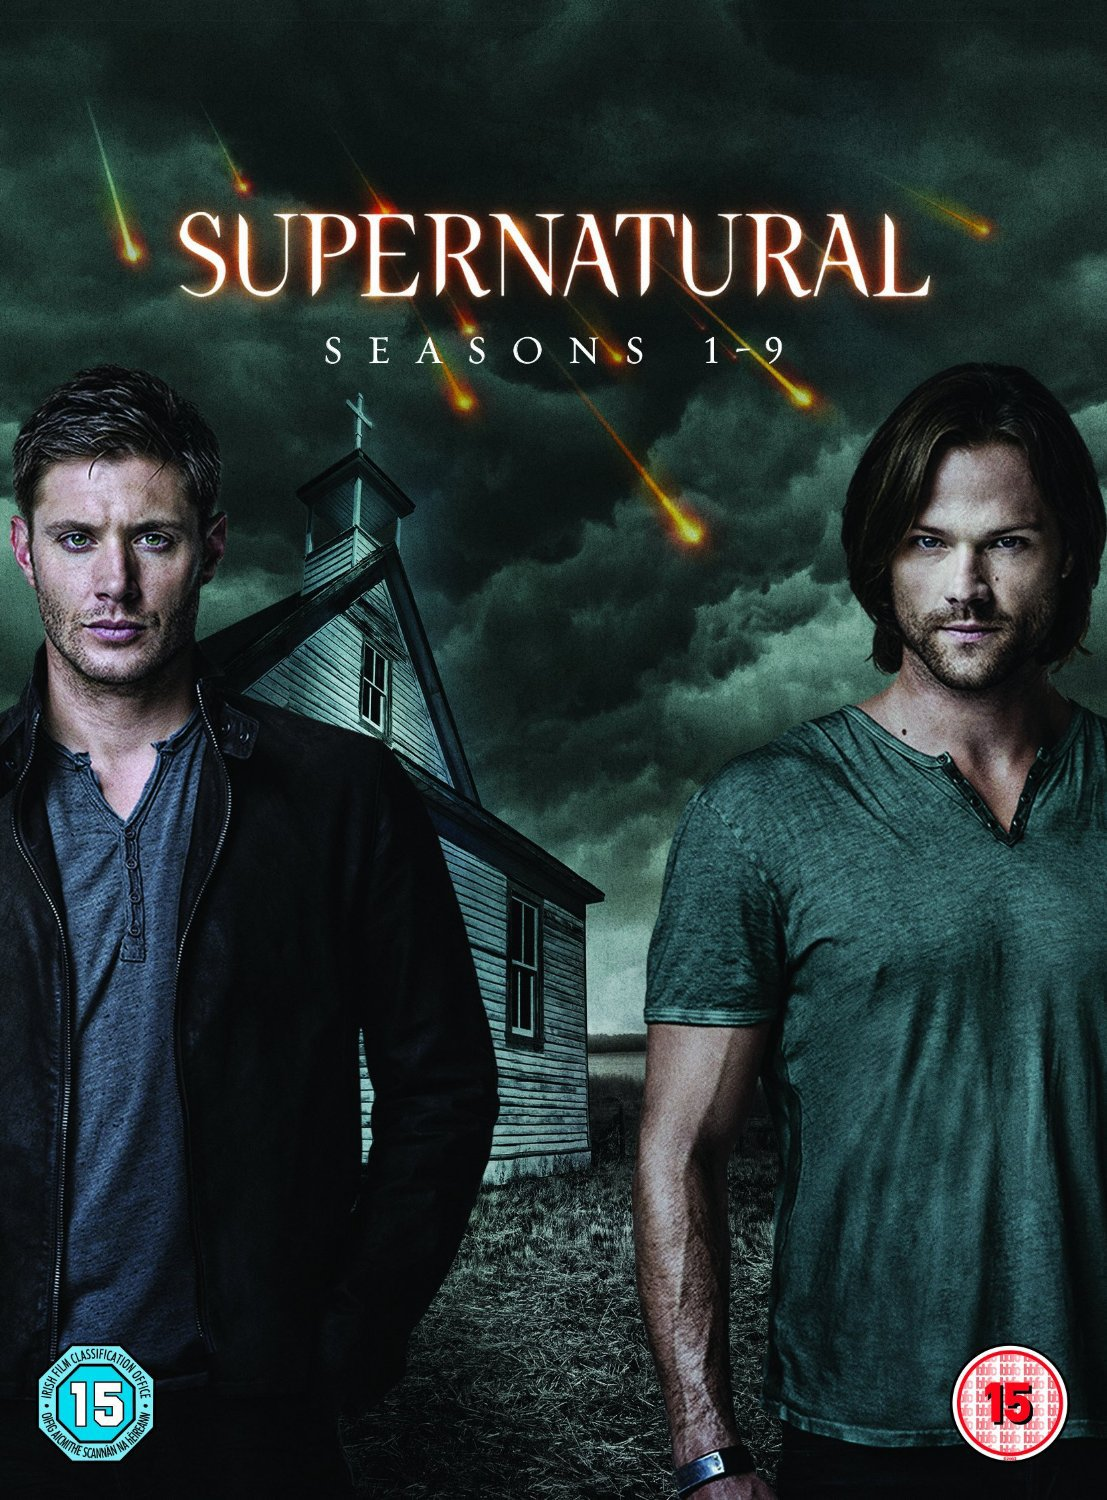 A Place To Call Home Complete Series Supernatural Dvd Seasons 1 12 Set Pristine Sales Supernatural - Season 1-9 [dvd] [2015]: Amazon.co.uk: Jared Padalecki,  Jensen Ackles: Dvd U0026 Blu-ray